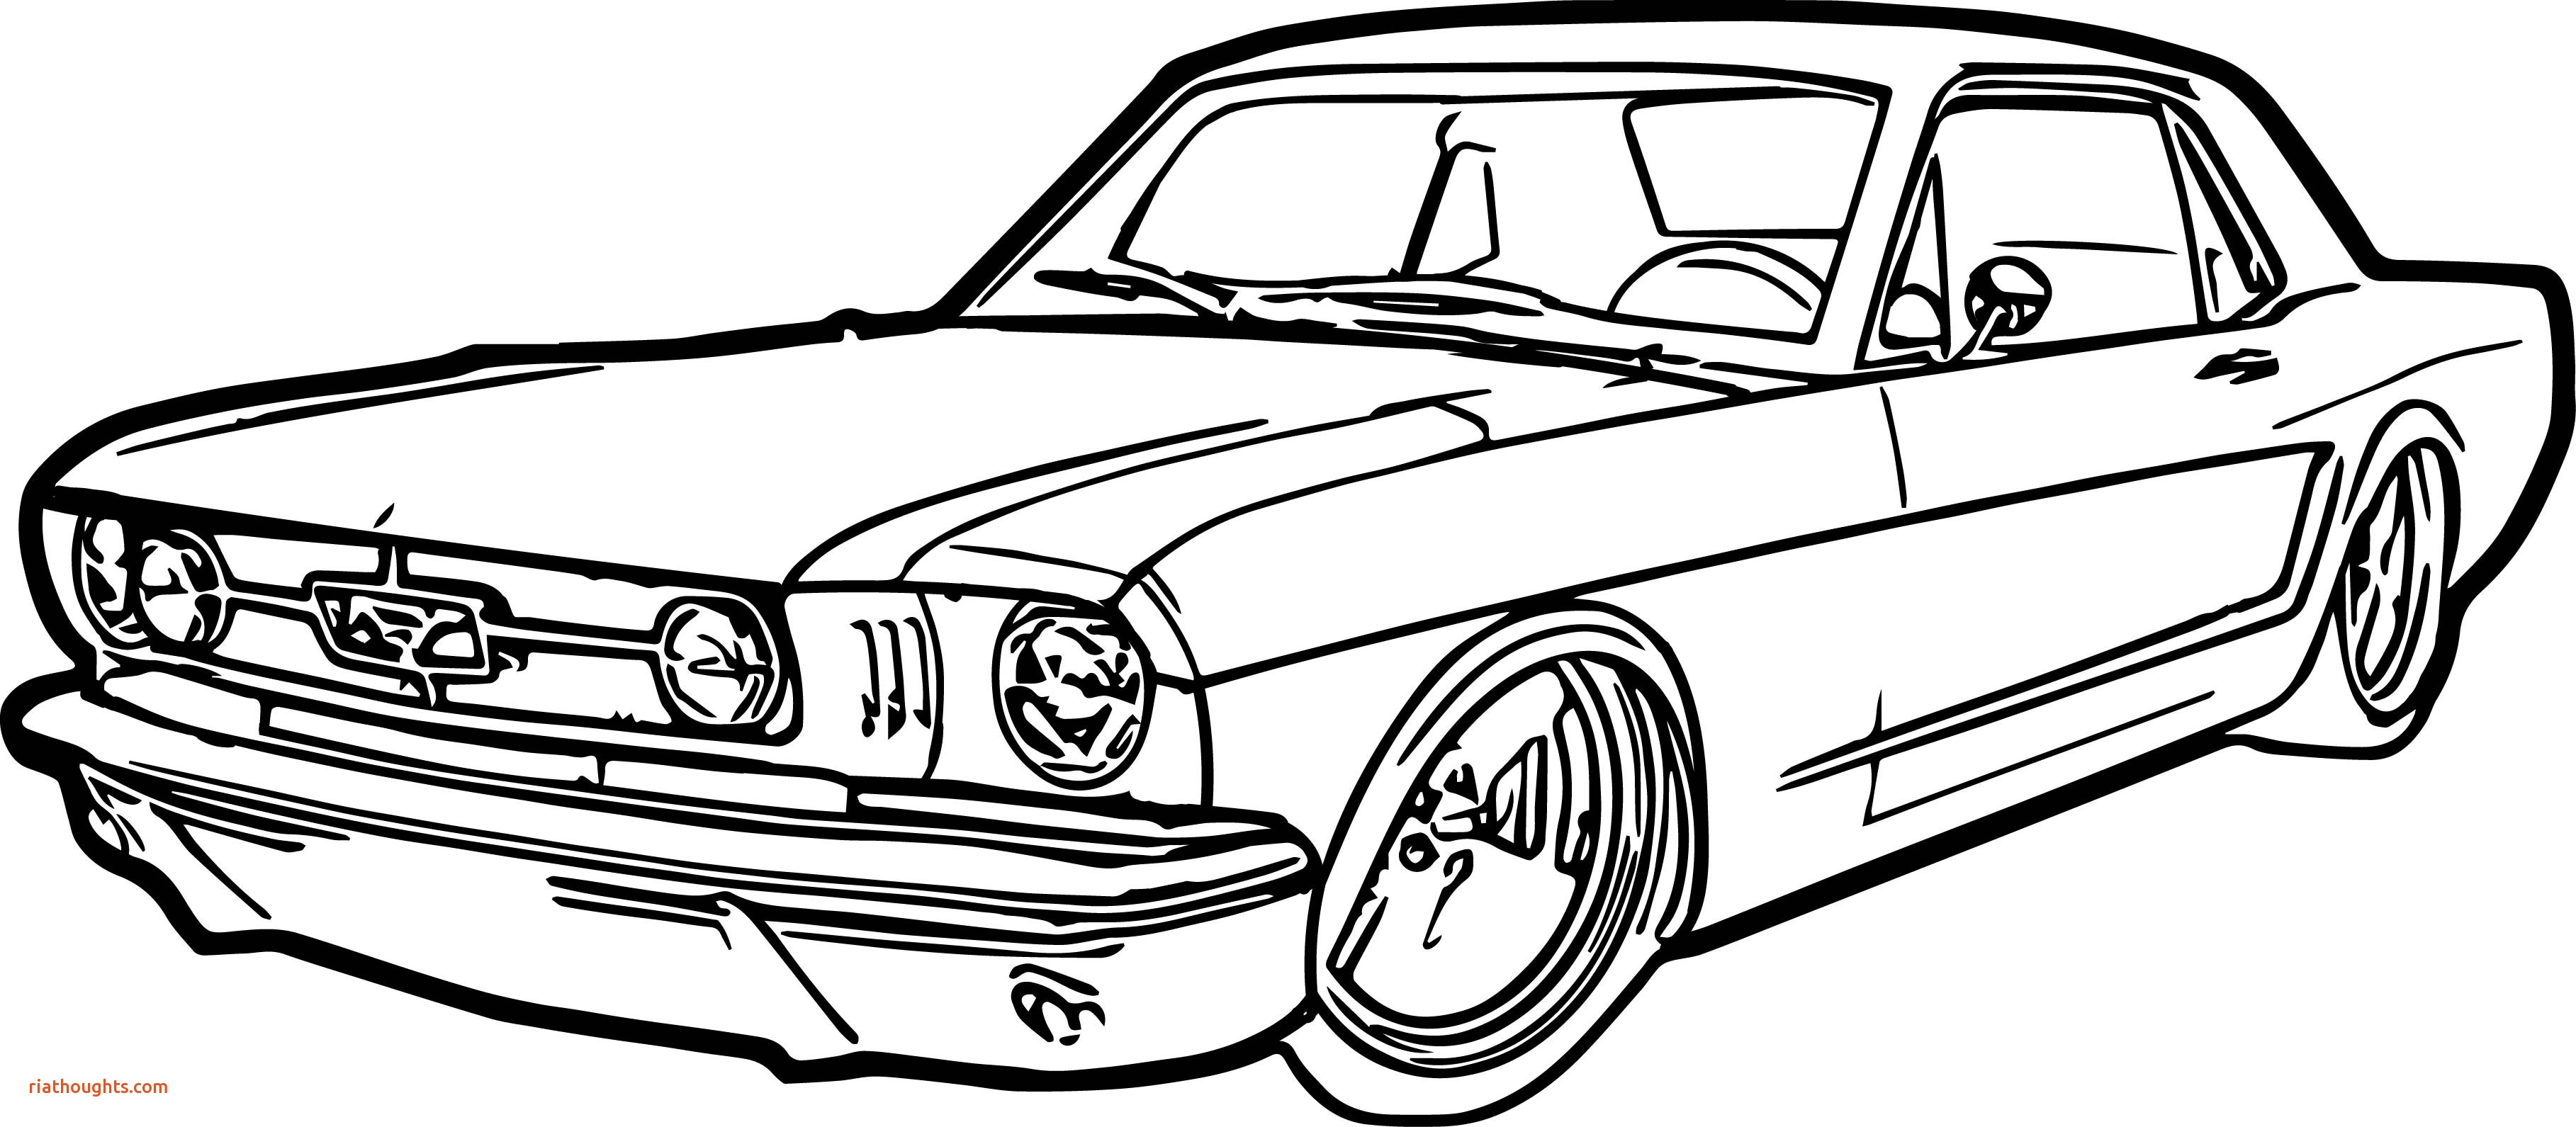 3635x1591 Fascinating Racing Car Colouring New Pages Coloring